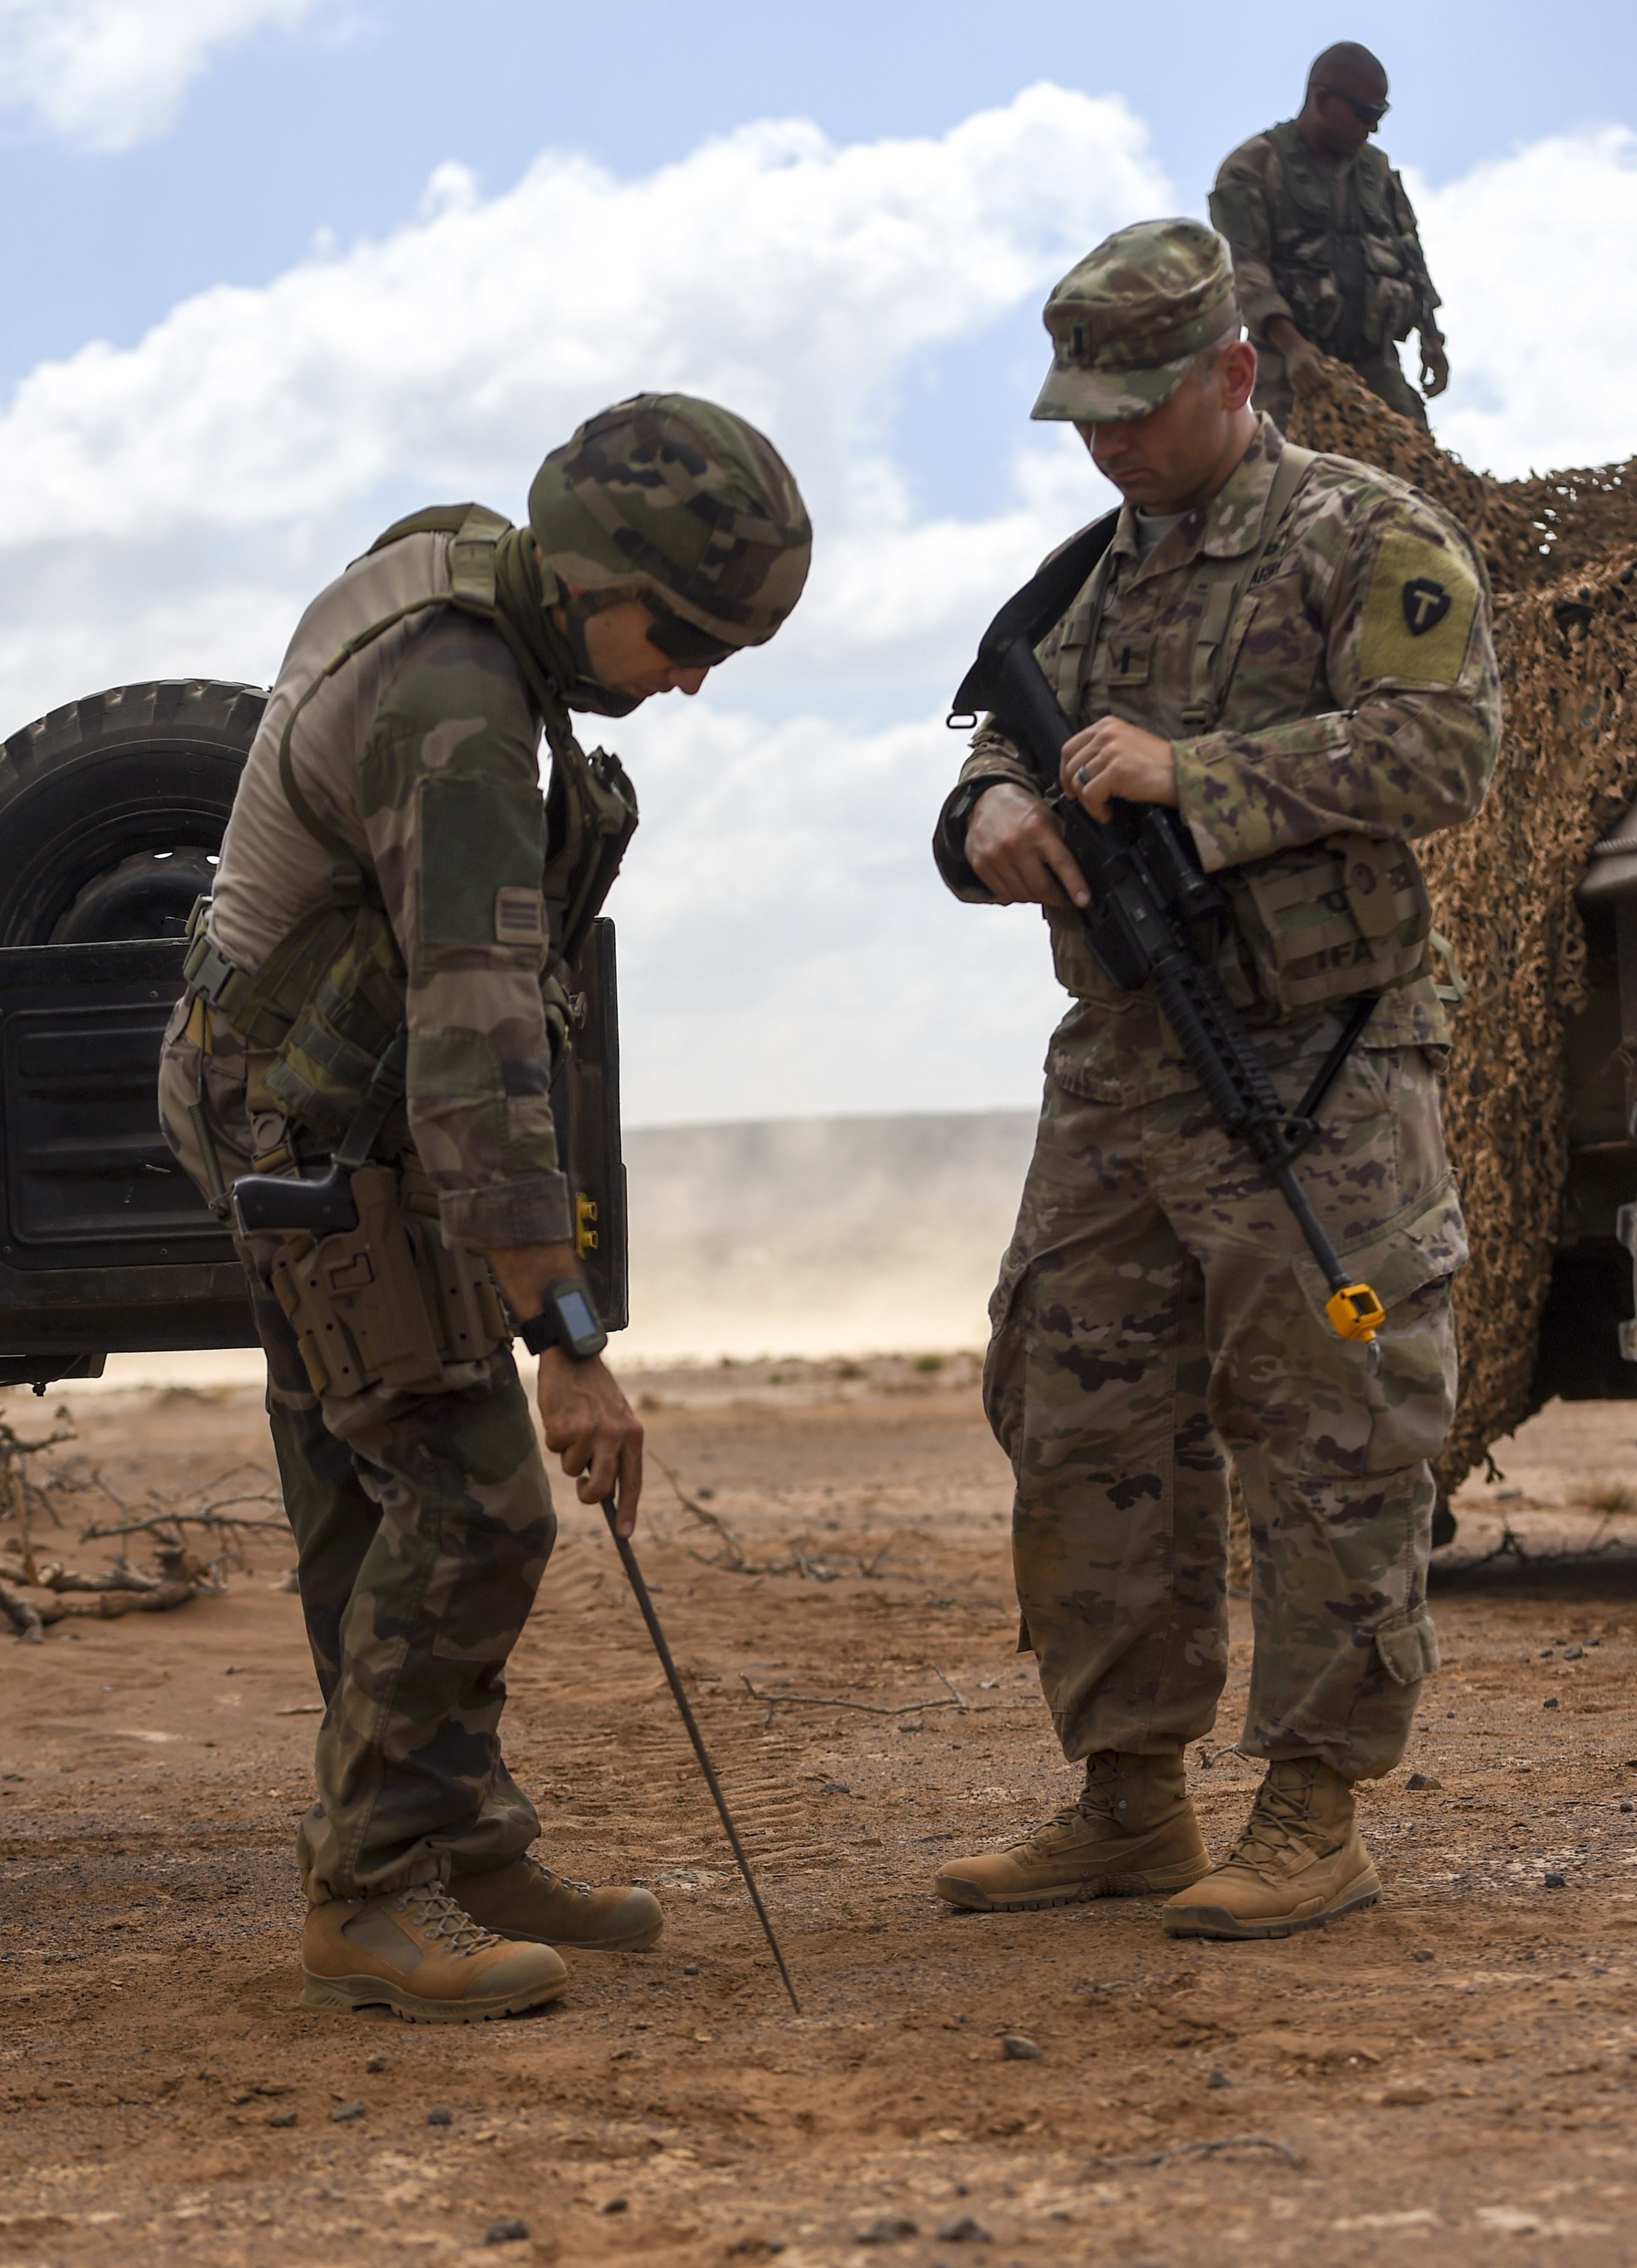 U.S. Army National Guard 1st Lt. Joshua York (right), 3rd Battalion, 144th Infantry Regiment, Task Force Bayonet platoon leader, discusses training logistics with his French counterpart on the first day of a French Desert Commando Course at the Djibouti Range Complex near Arta, Djibouti, Nov. 26, 2017. The 12-day course will expose service members to the fundamentals of desert combat, survival, and troop movements while also bridging language and cultural barriers between the French and American troops. (U.S. Air Force photo by Staff Sgt. Timothy Moore)